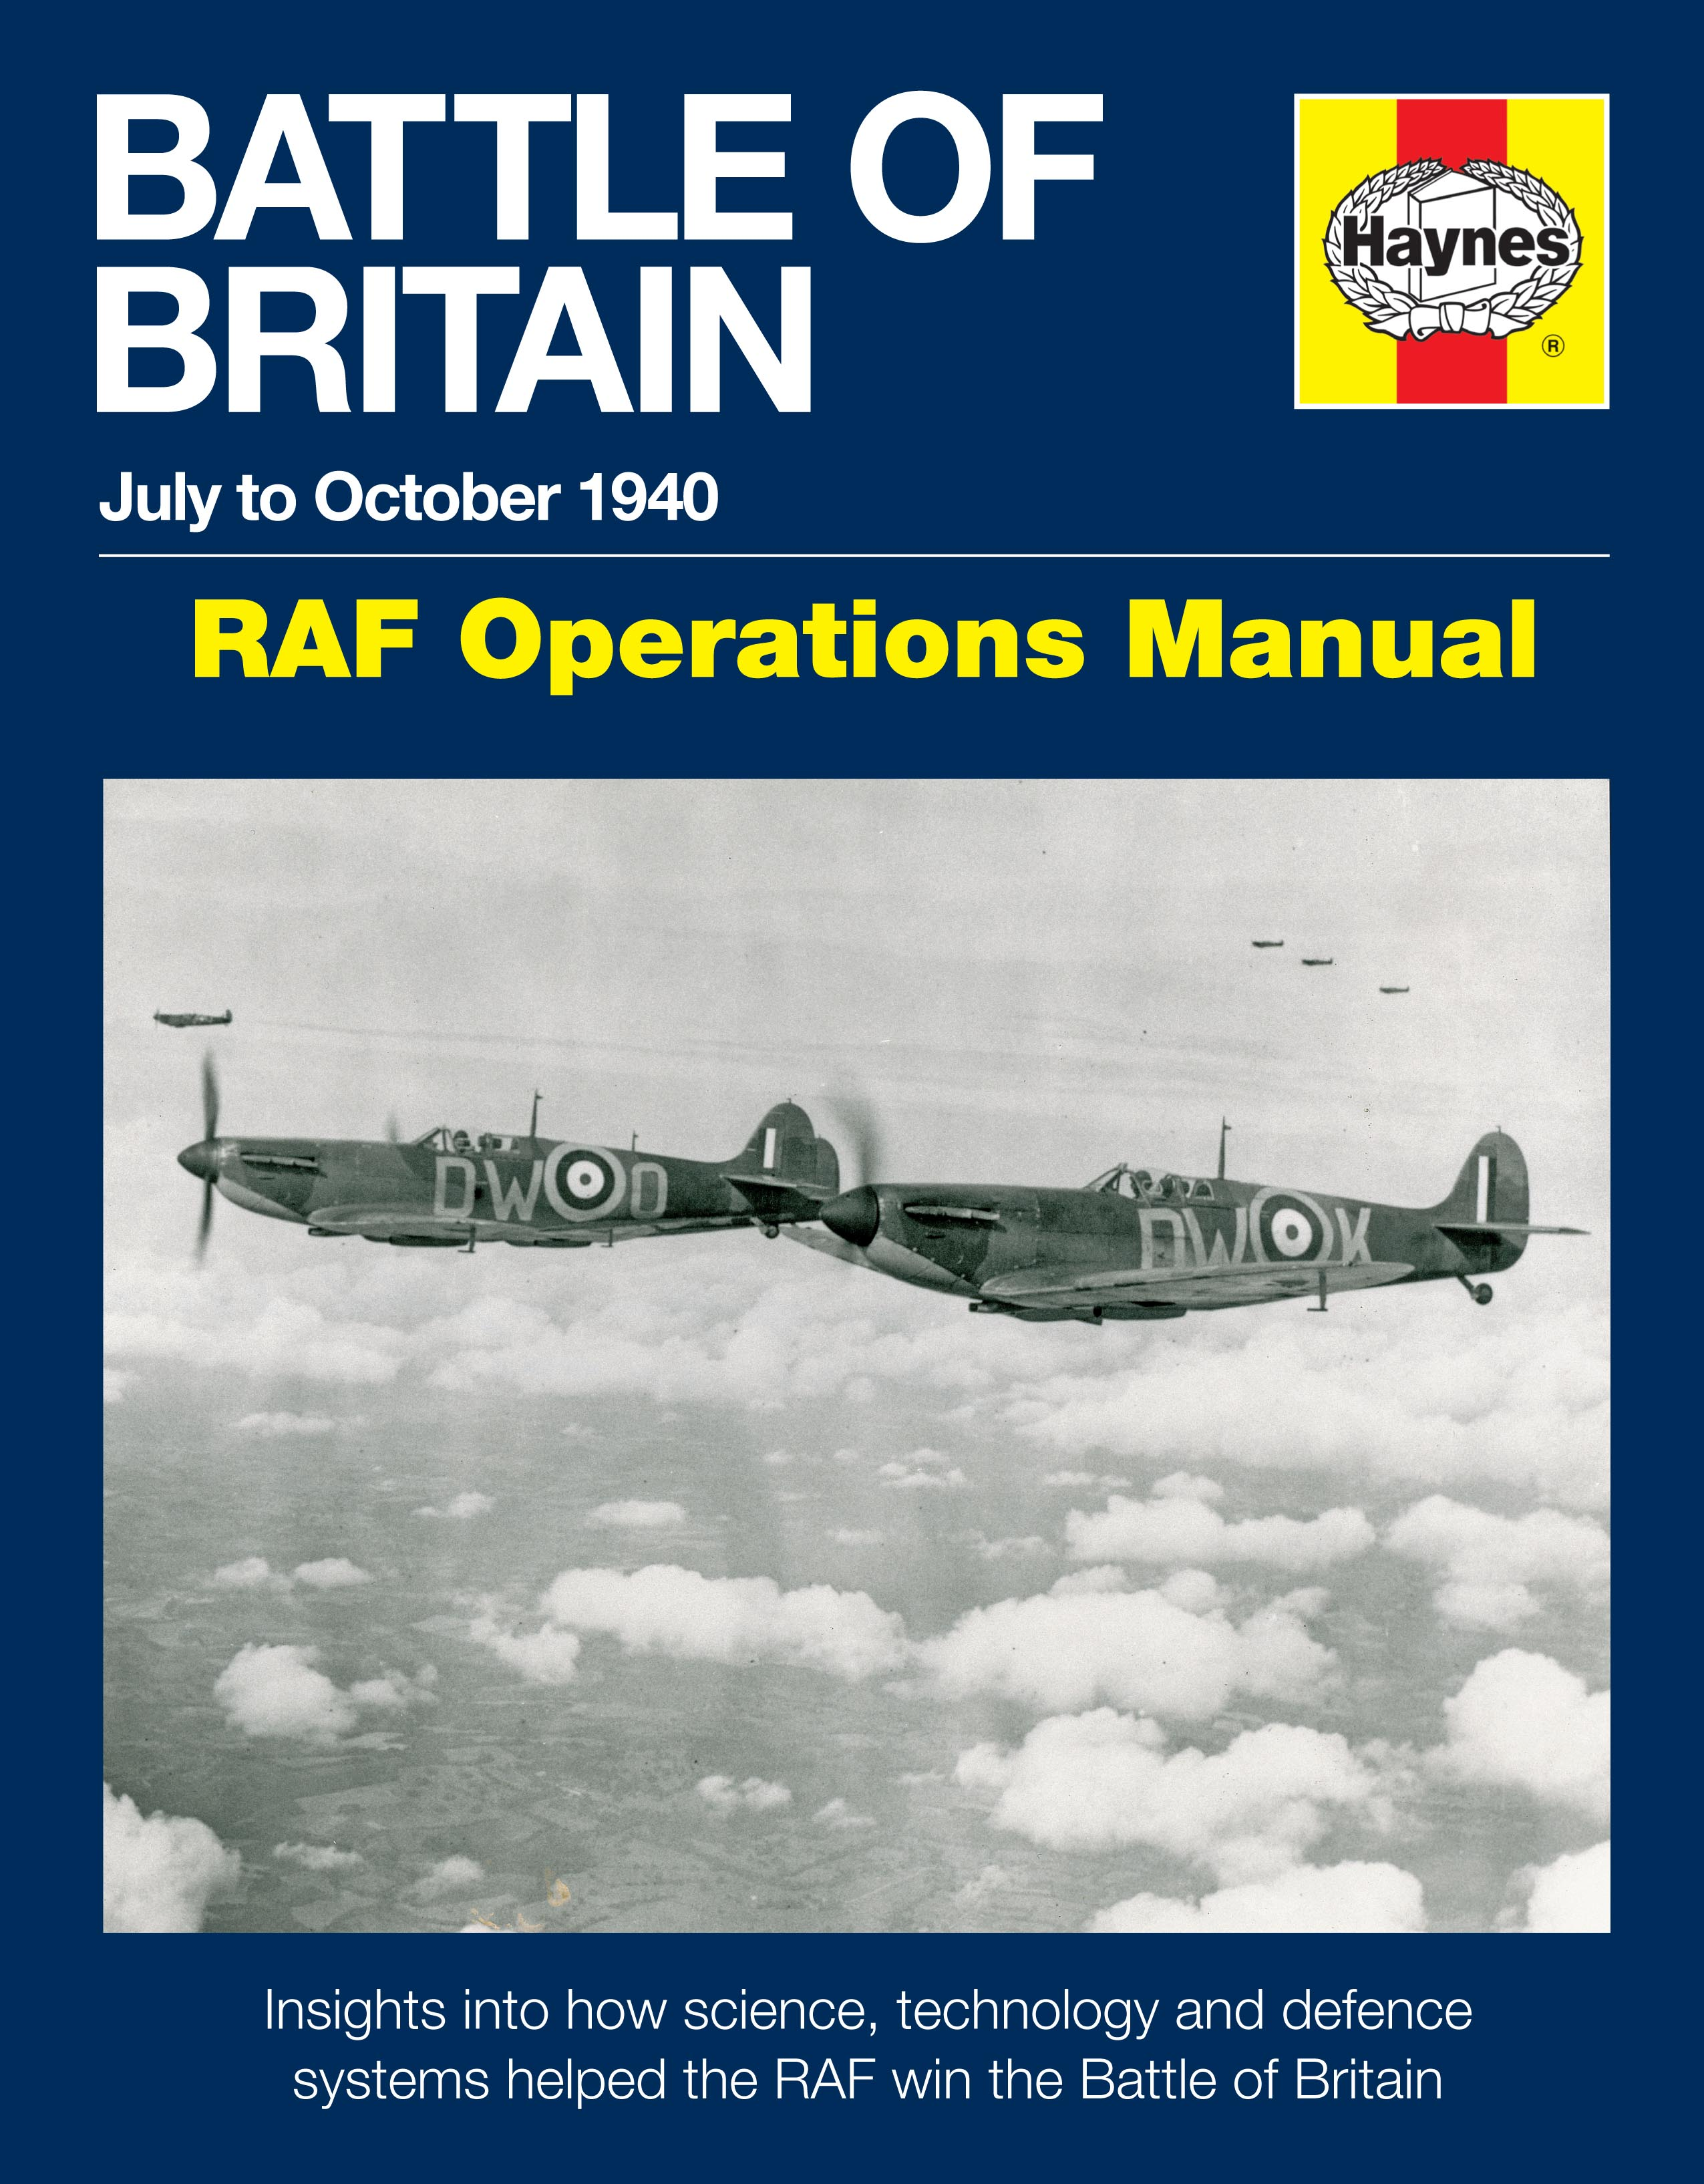 Battle of Britain: RAF Operations Manual 1940